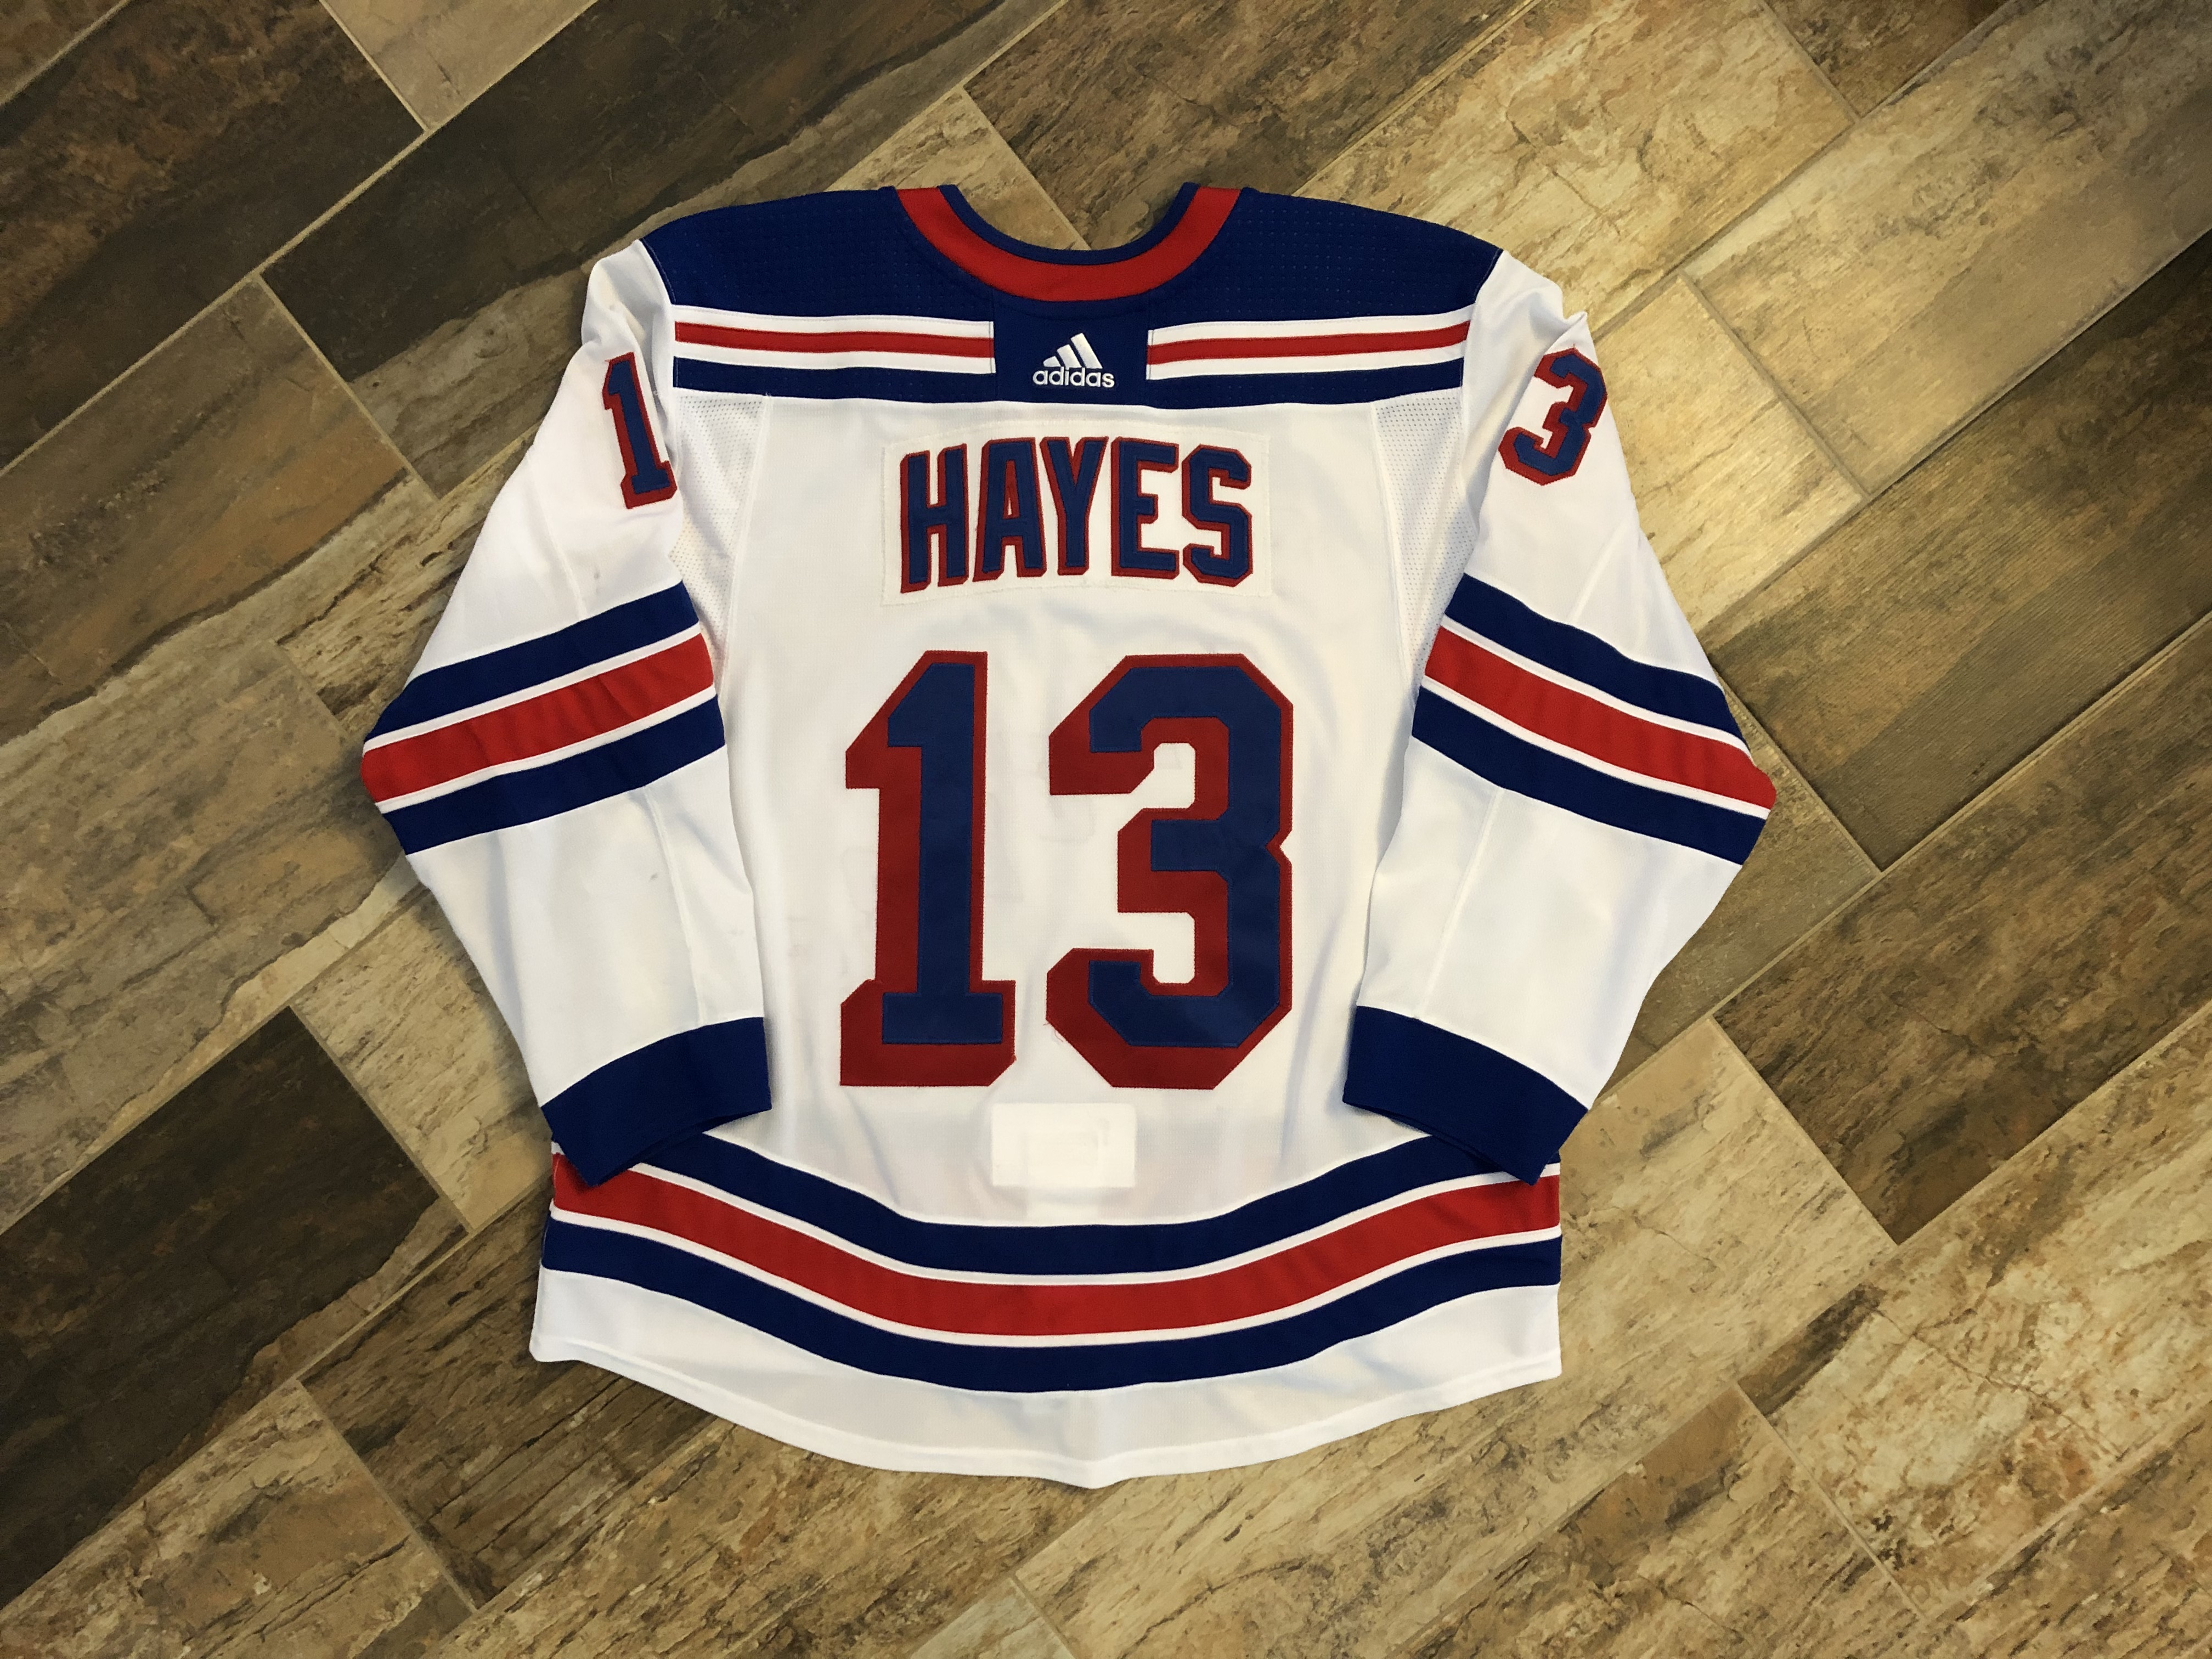 finest selection 5b77d ad4f0 Kevin Hayes #13 New York Rangers 2017-18 – Red Lizard Sports